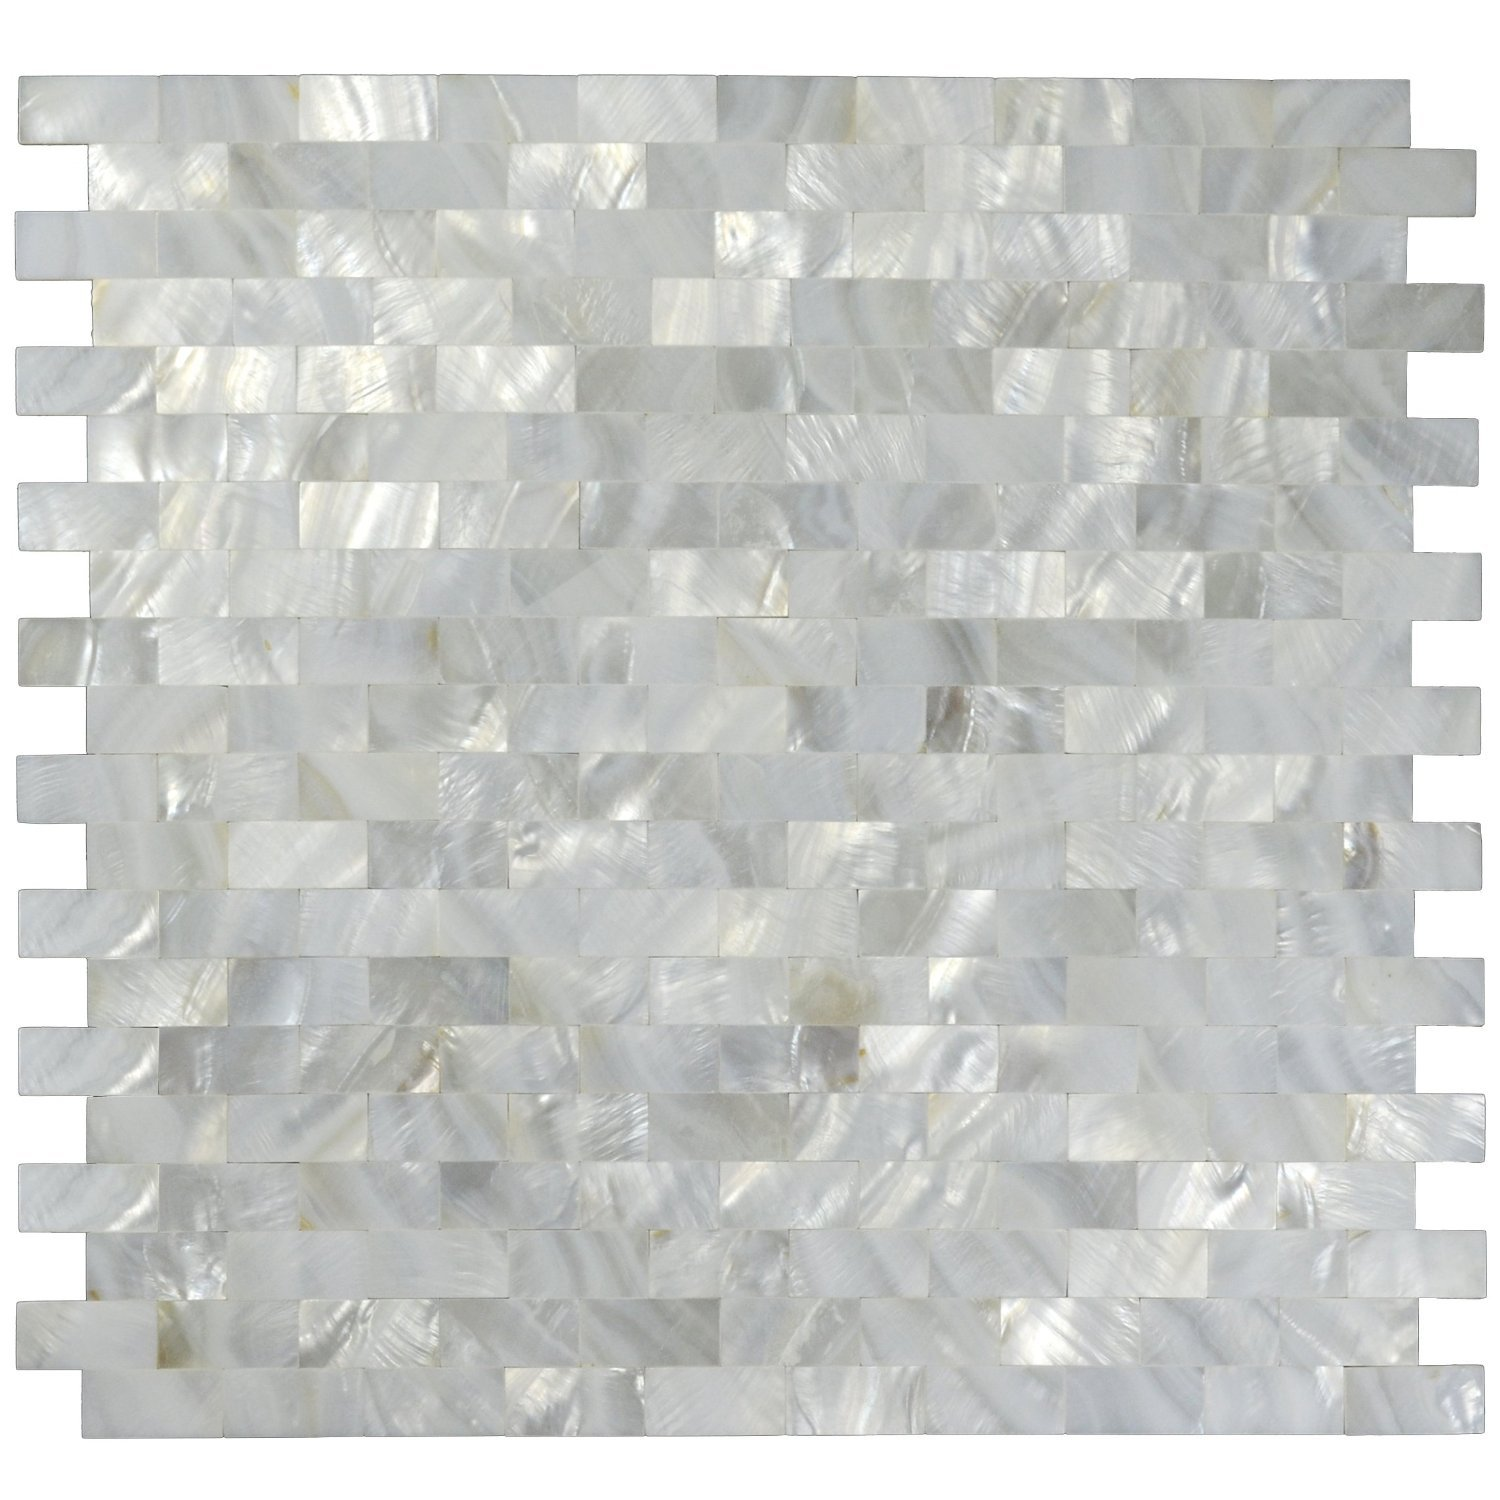 White Mother of Pearl Tile Shell Mosaic Tile Kitchen Backsplash